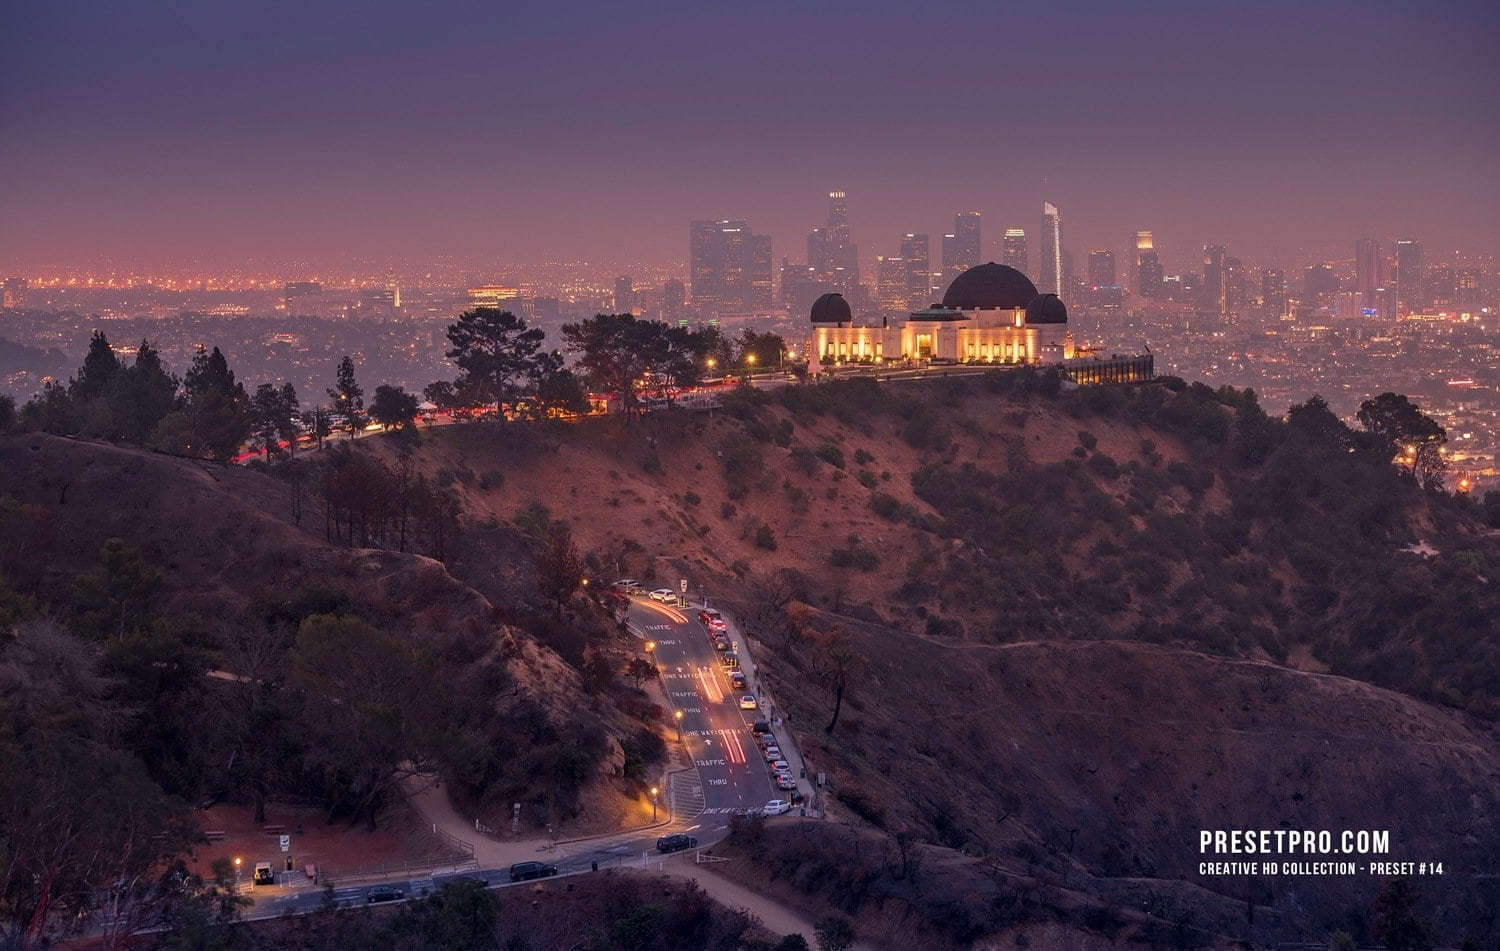 Creative Flow Lightroom Presets and Profiles Hollywood Hills C009-P14